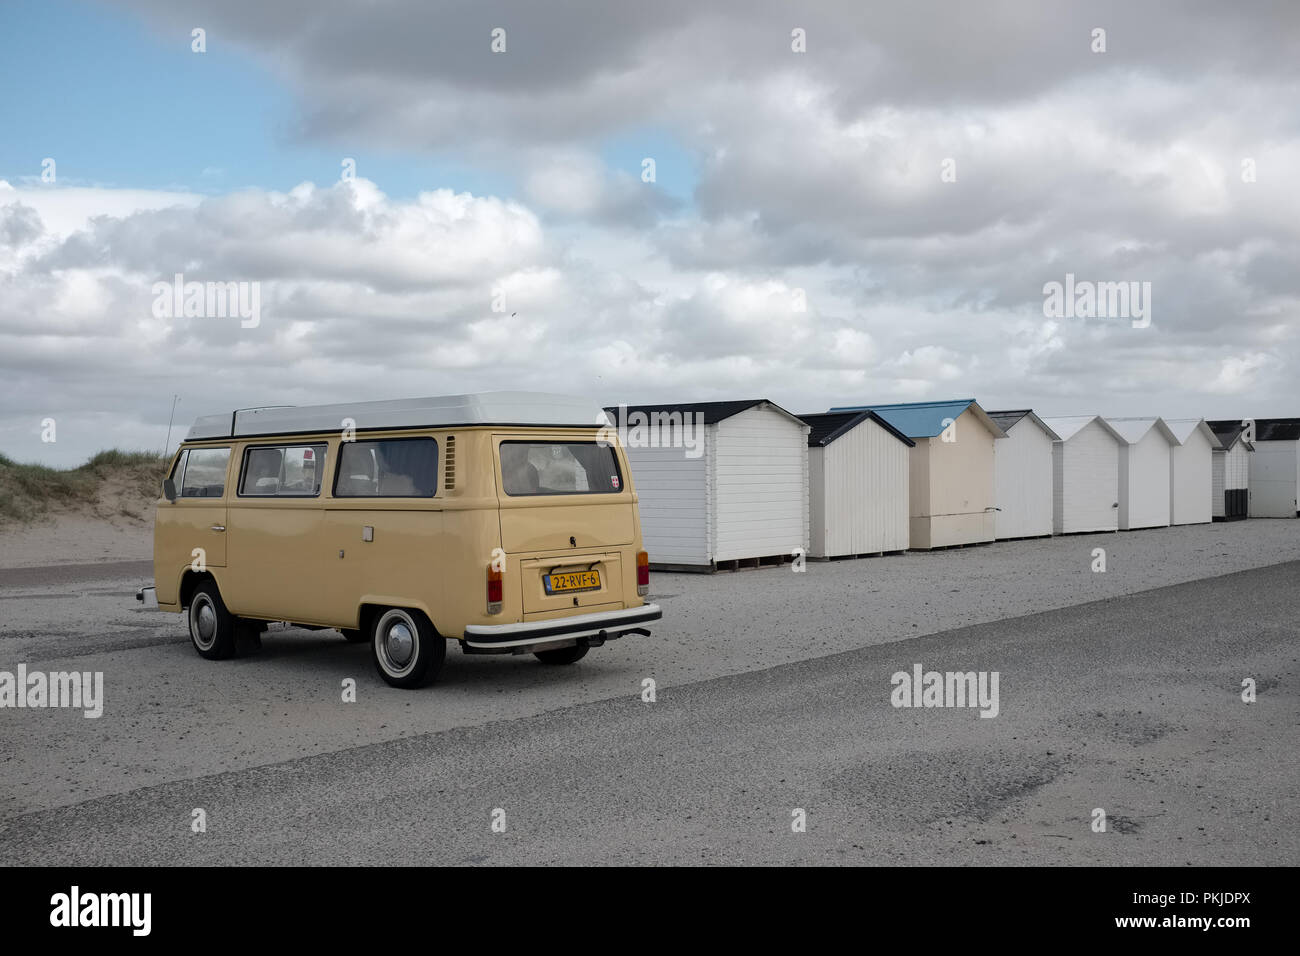 Old Volkswagen van and beach cabins on a deserted beach, Saturday 14 May 2016, Texel, the Netherlands. Stock Photo